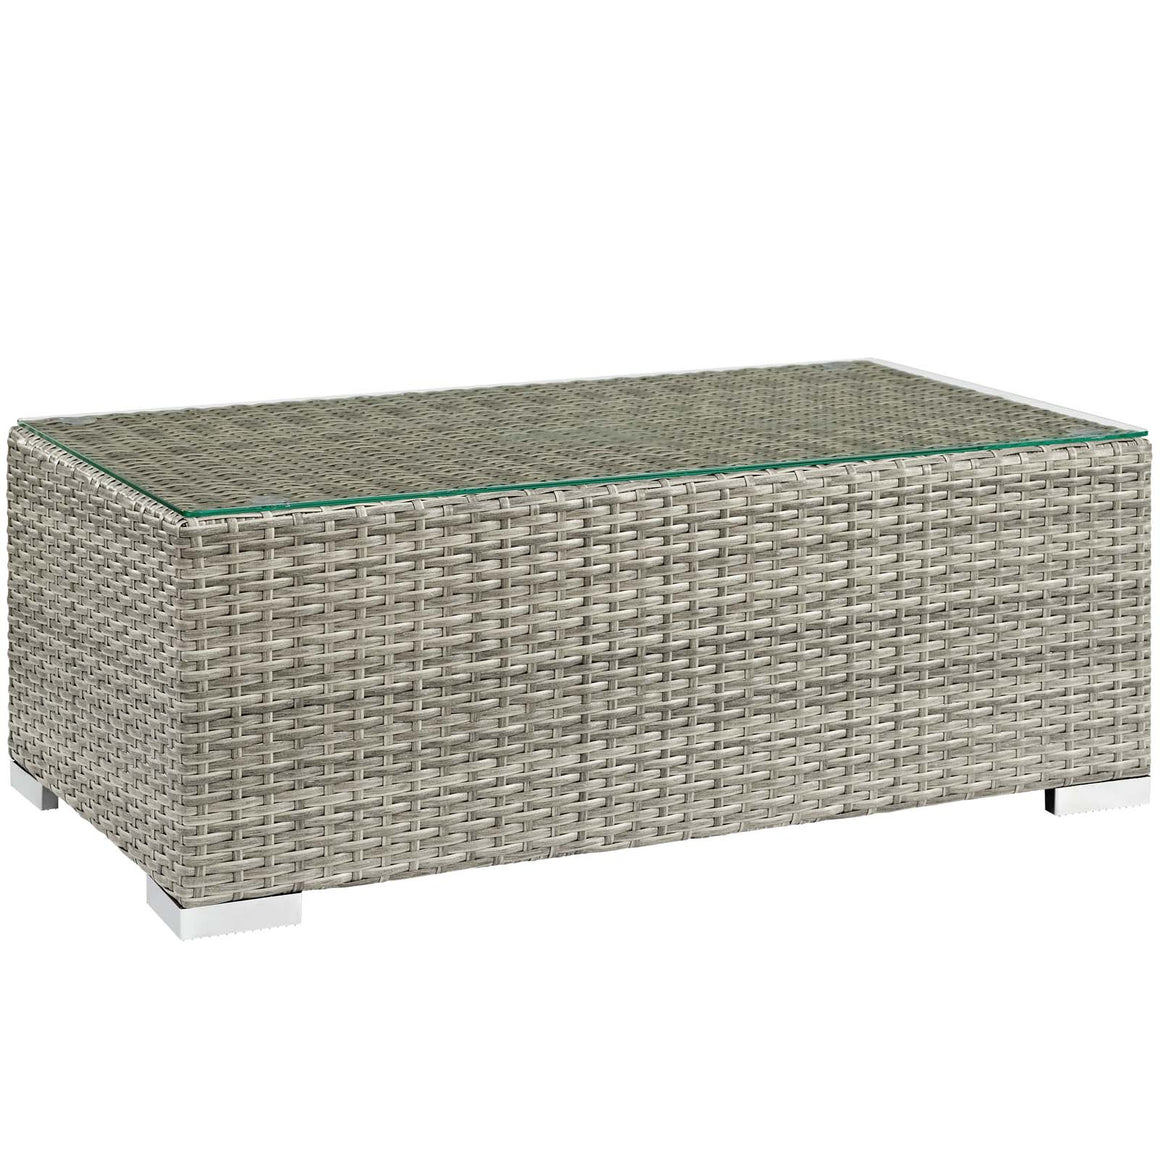 REPOSE OUTDOOR PATIO COFFEE TABLE IN LIGHT GRAY